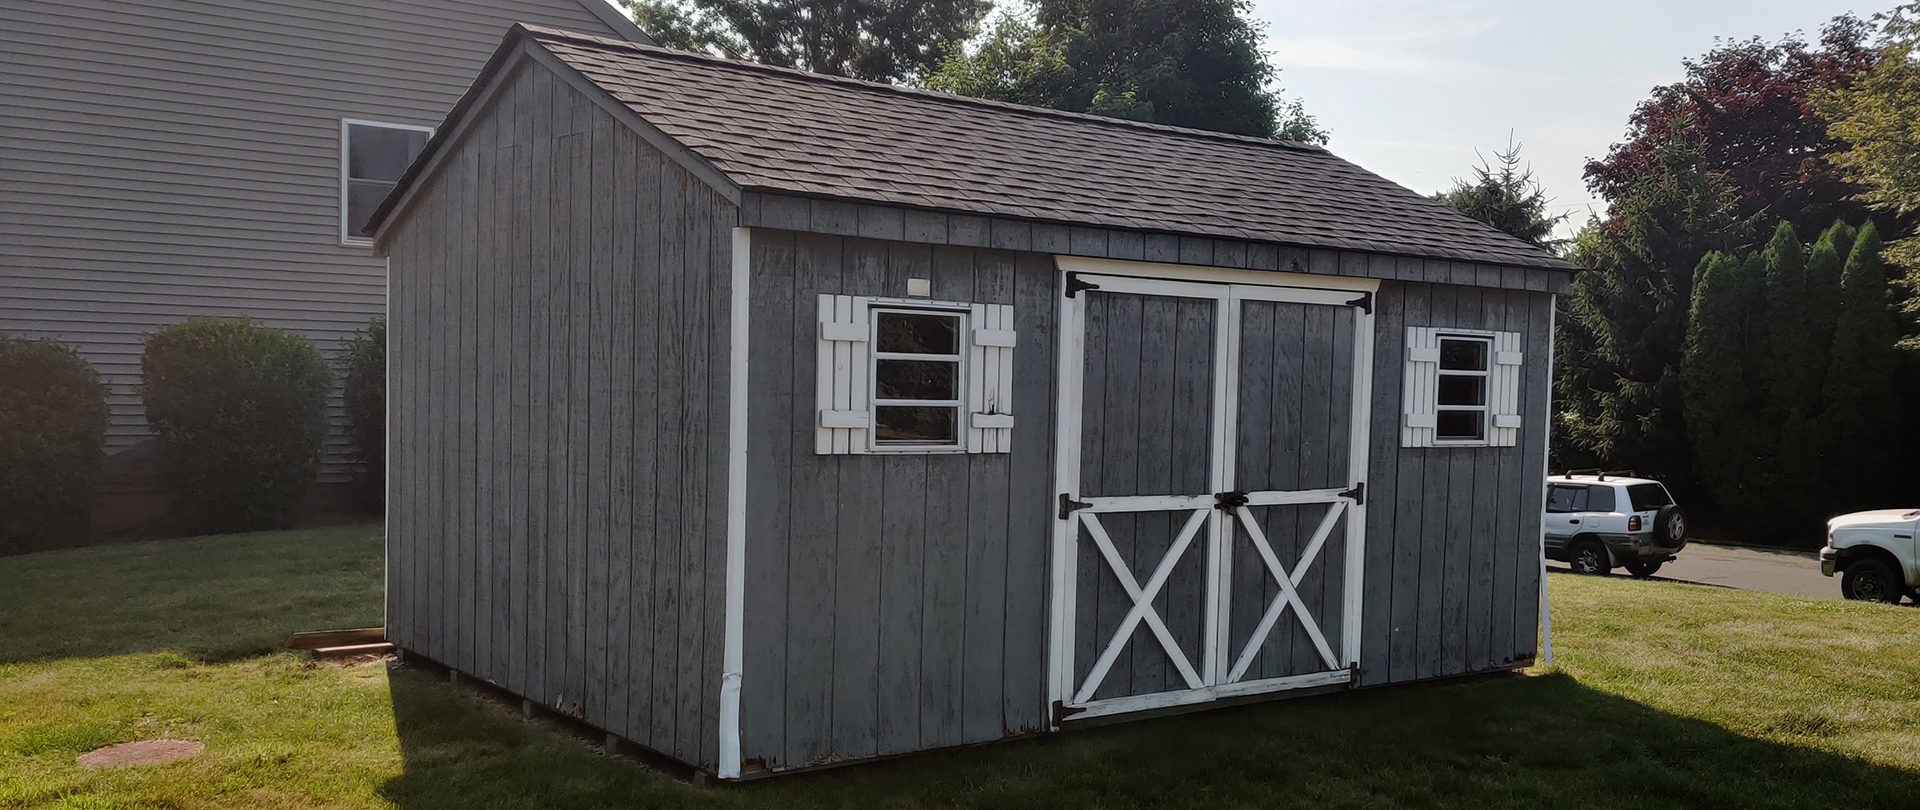 Siding Repaired